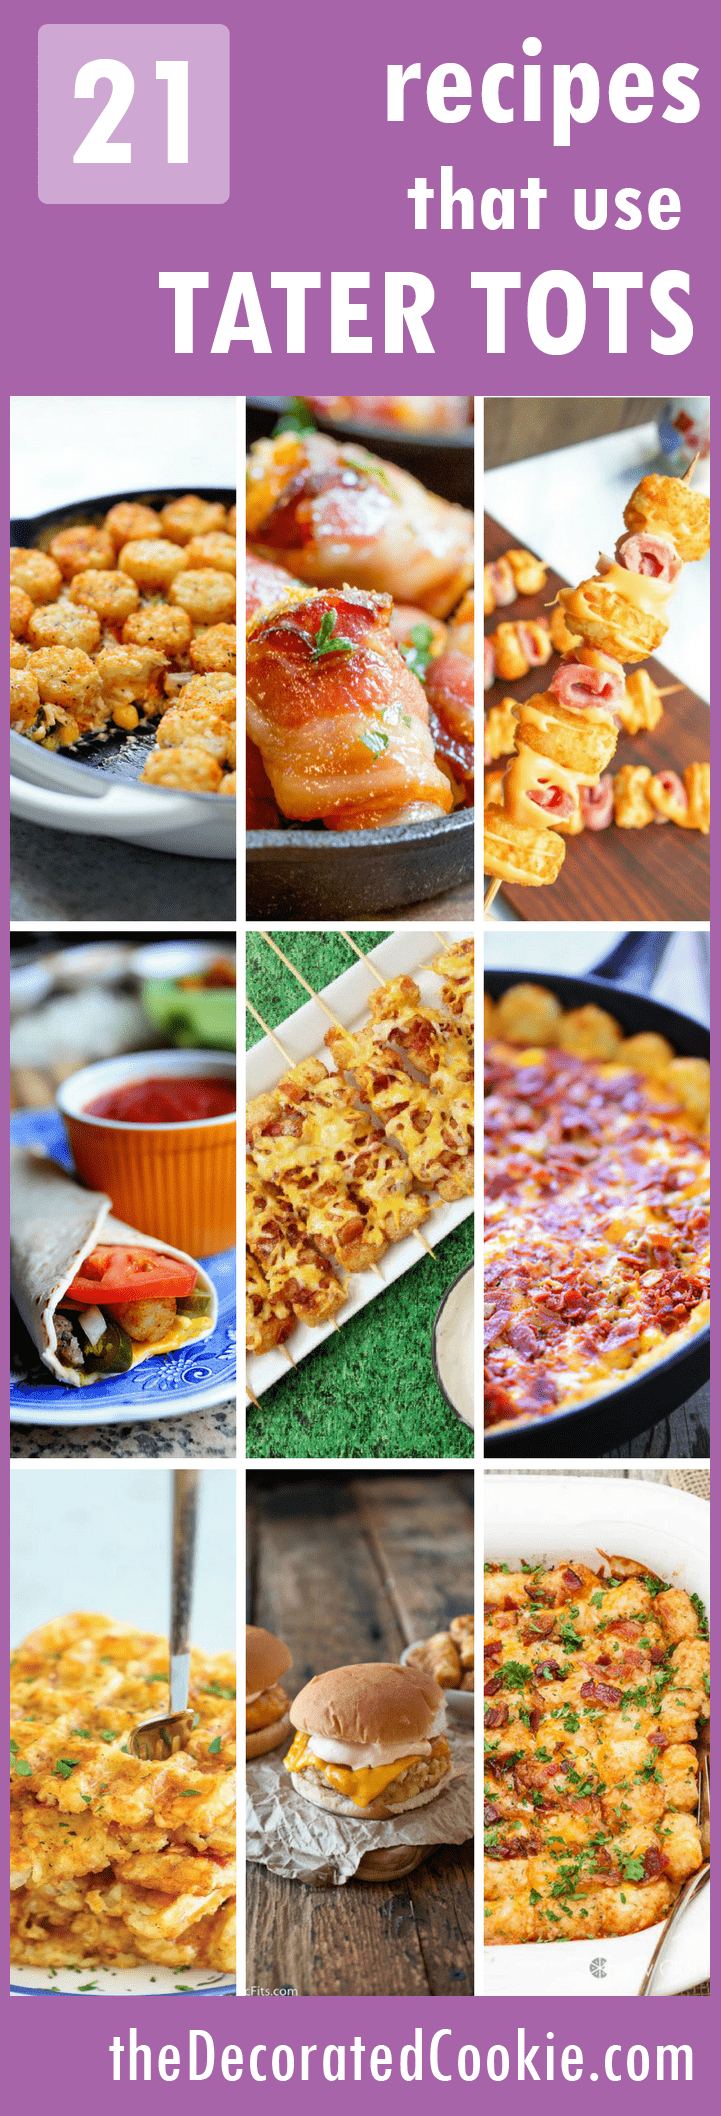 21 recipes that use tater tots